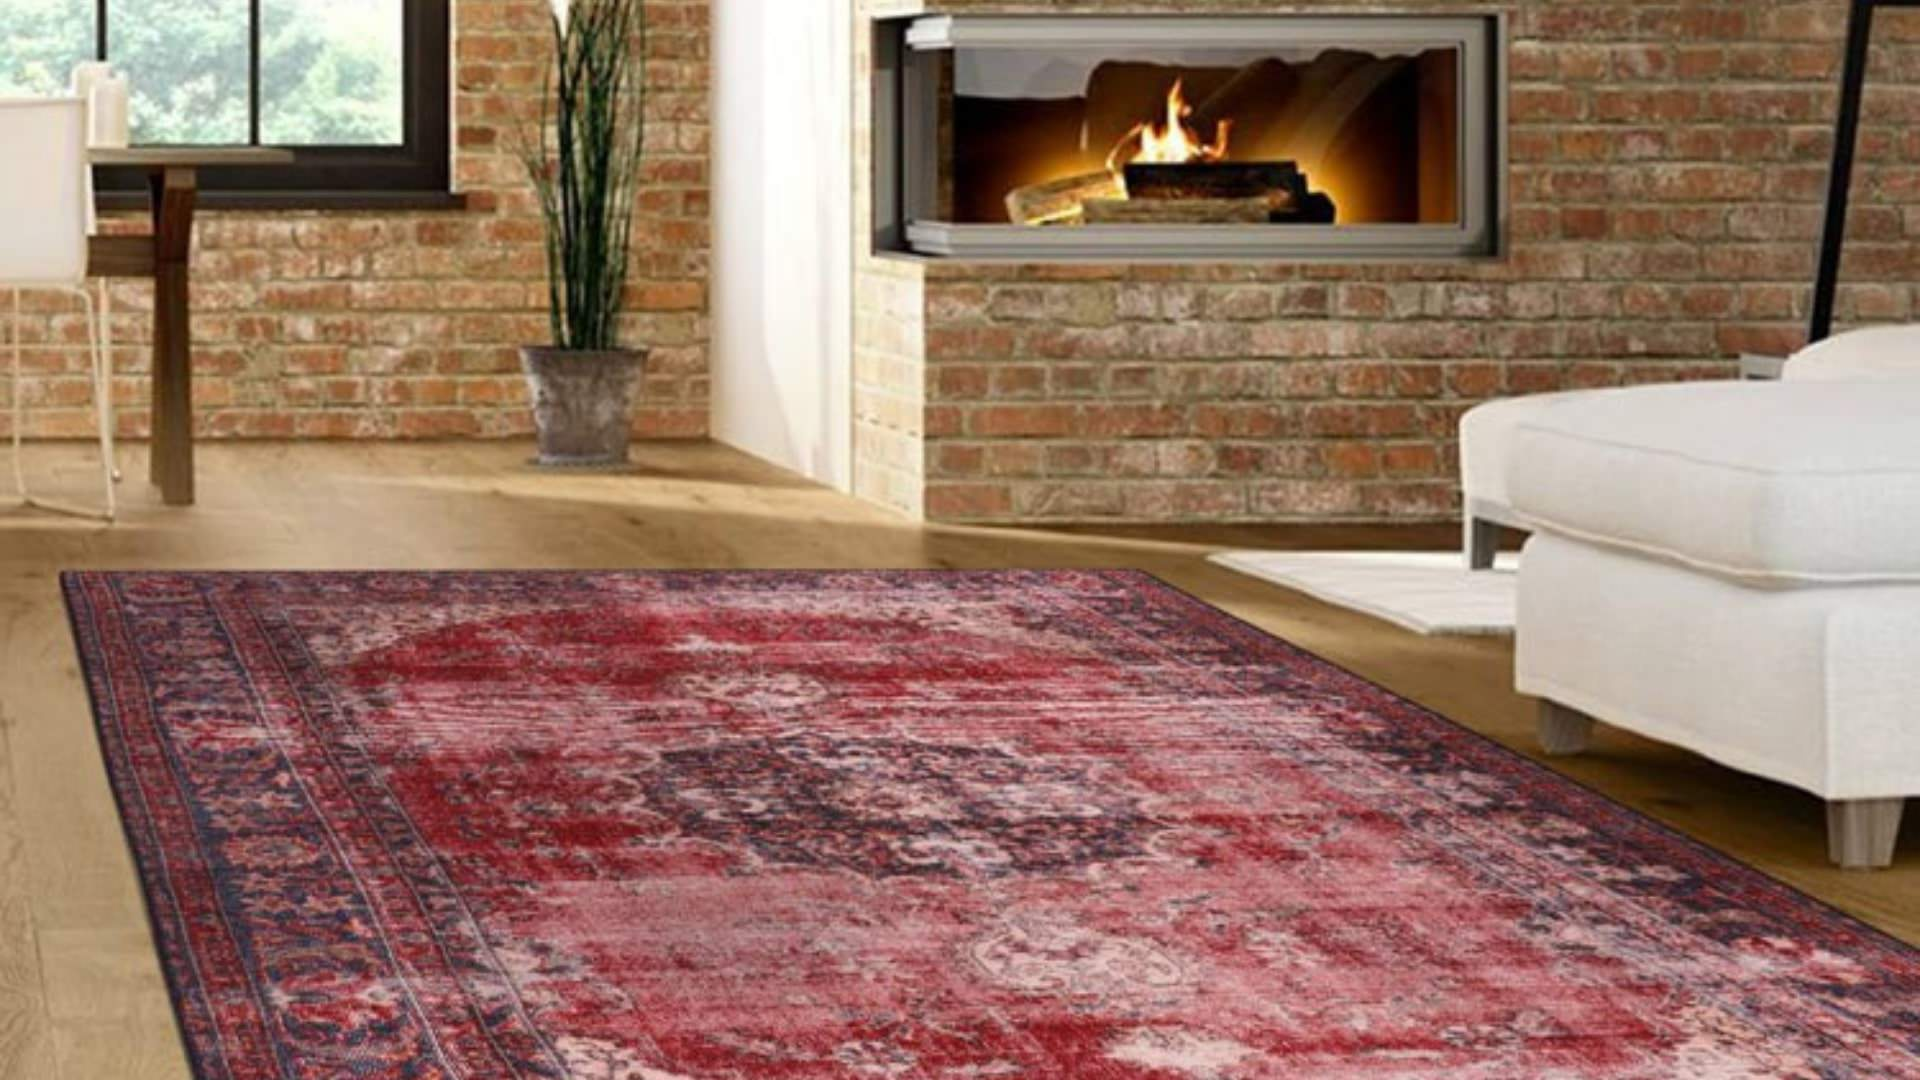 Buy High Quality Rugs Online